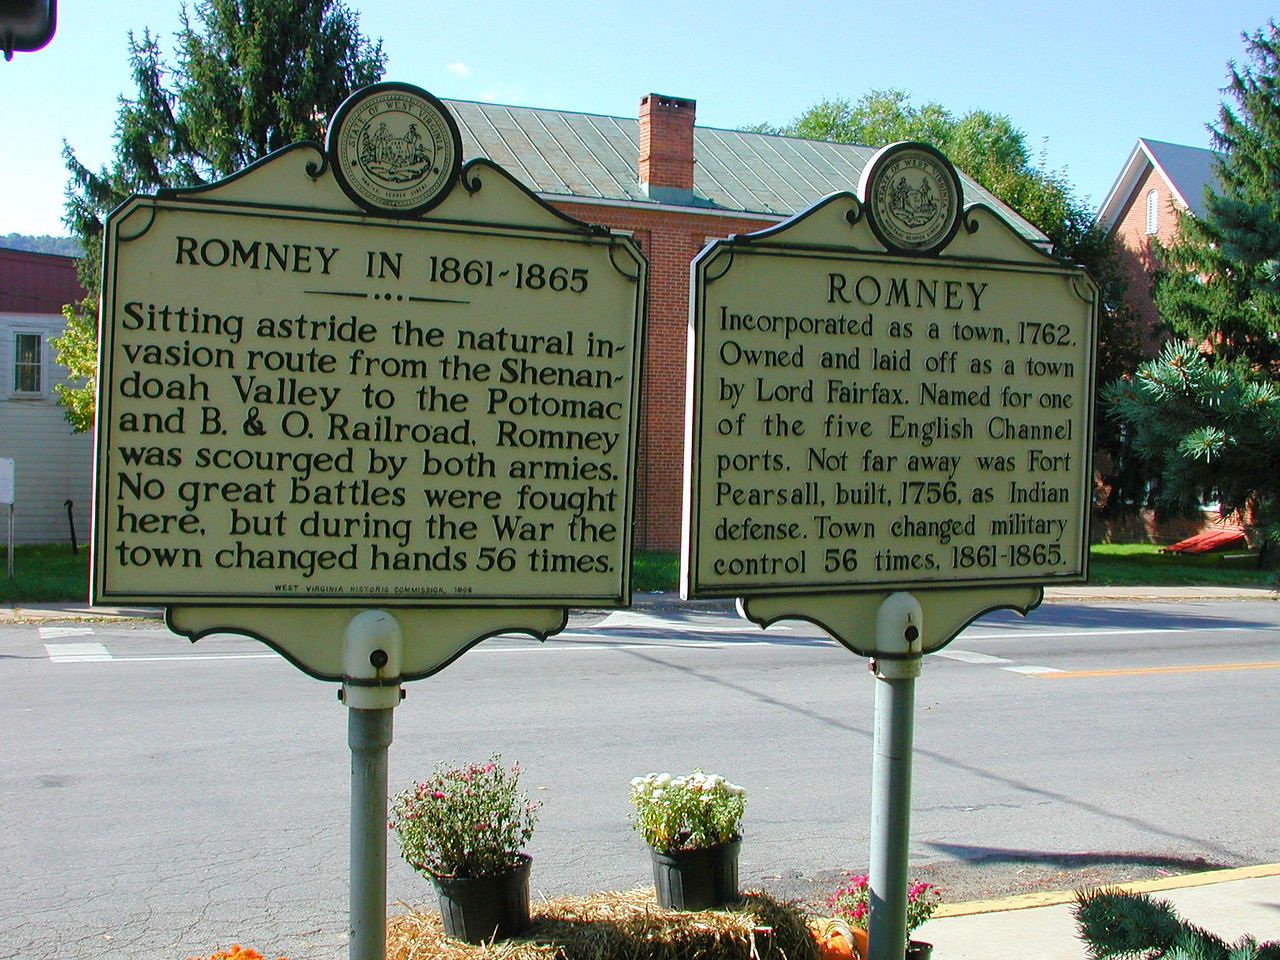 These signs by the courthouse in Romney, West Virginia tell an interesting story.